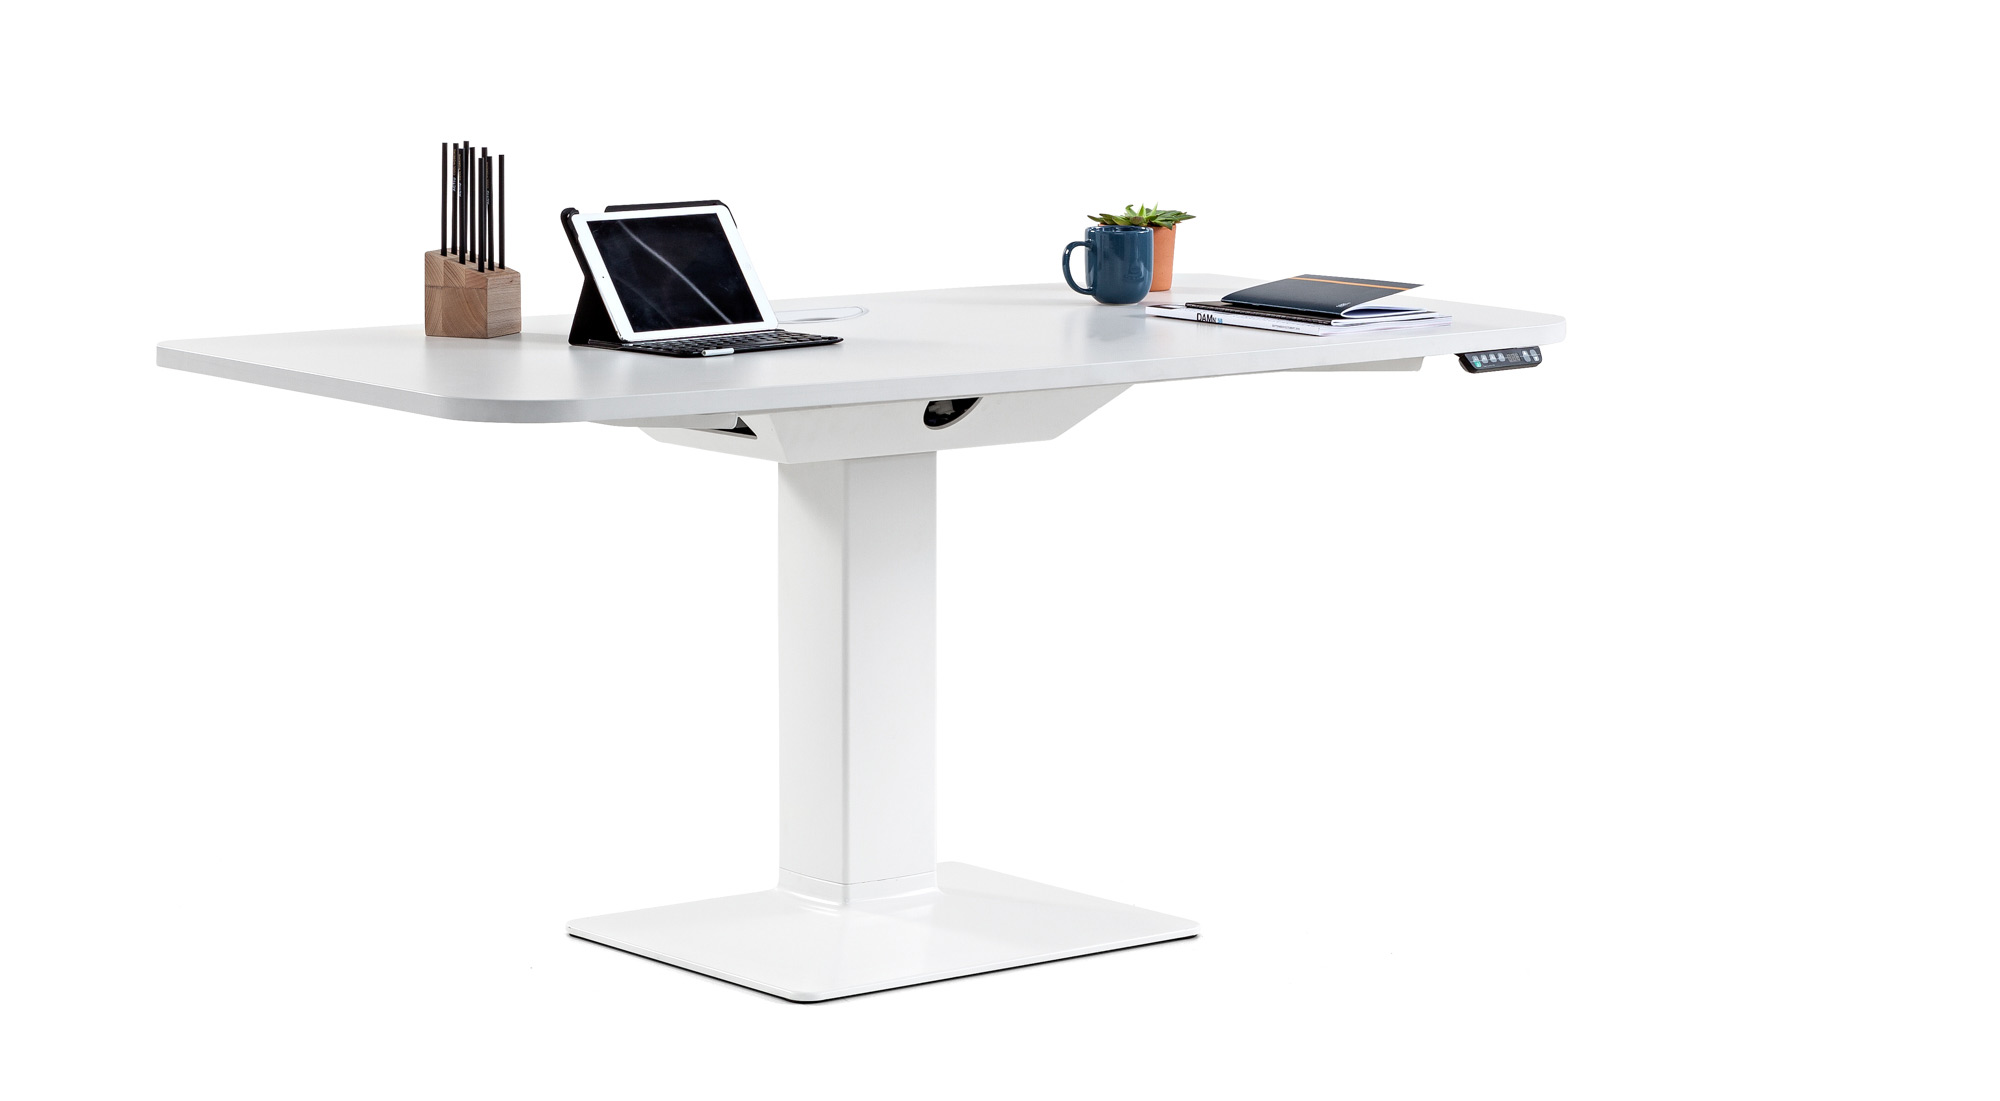 desk power tables personal professional height fixedheight comfort tablet coffecup books synchrony technology advanced mobility design adjustable quality adaptable masof actiu